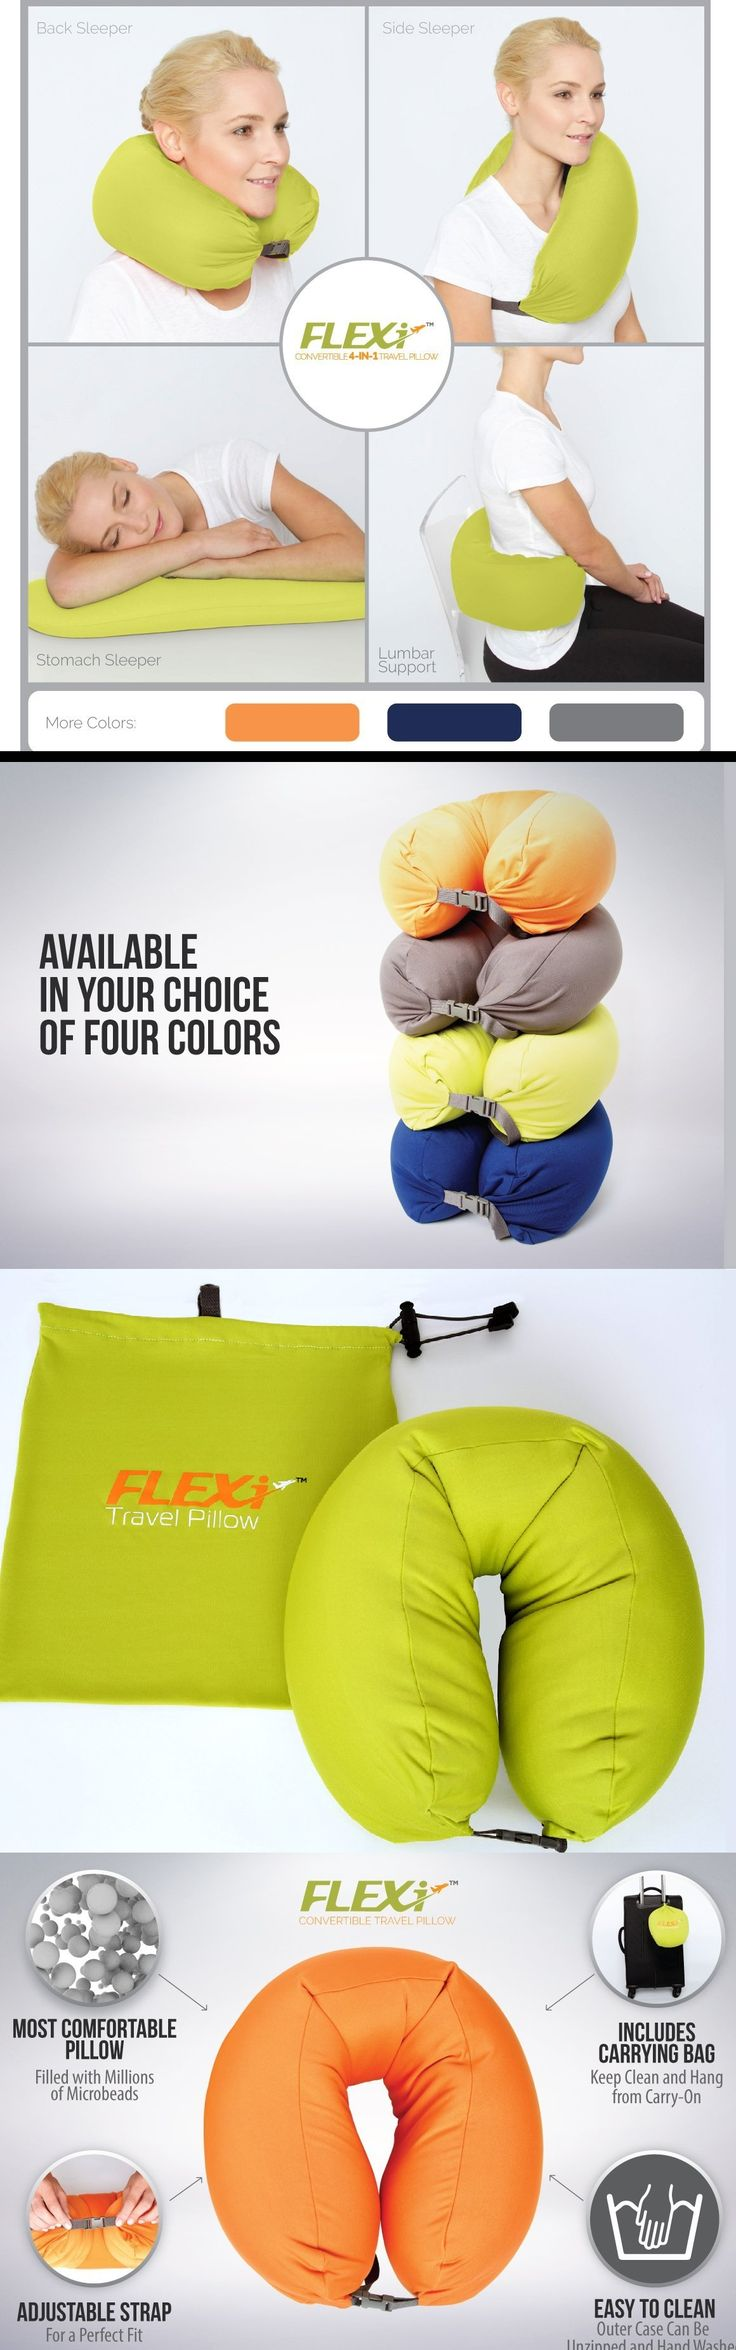 FLEXi 4-in-1 Convertible Travel Pillow